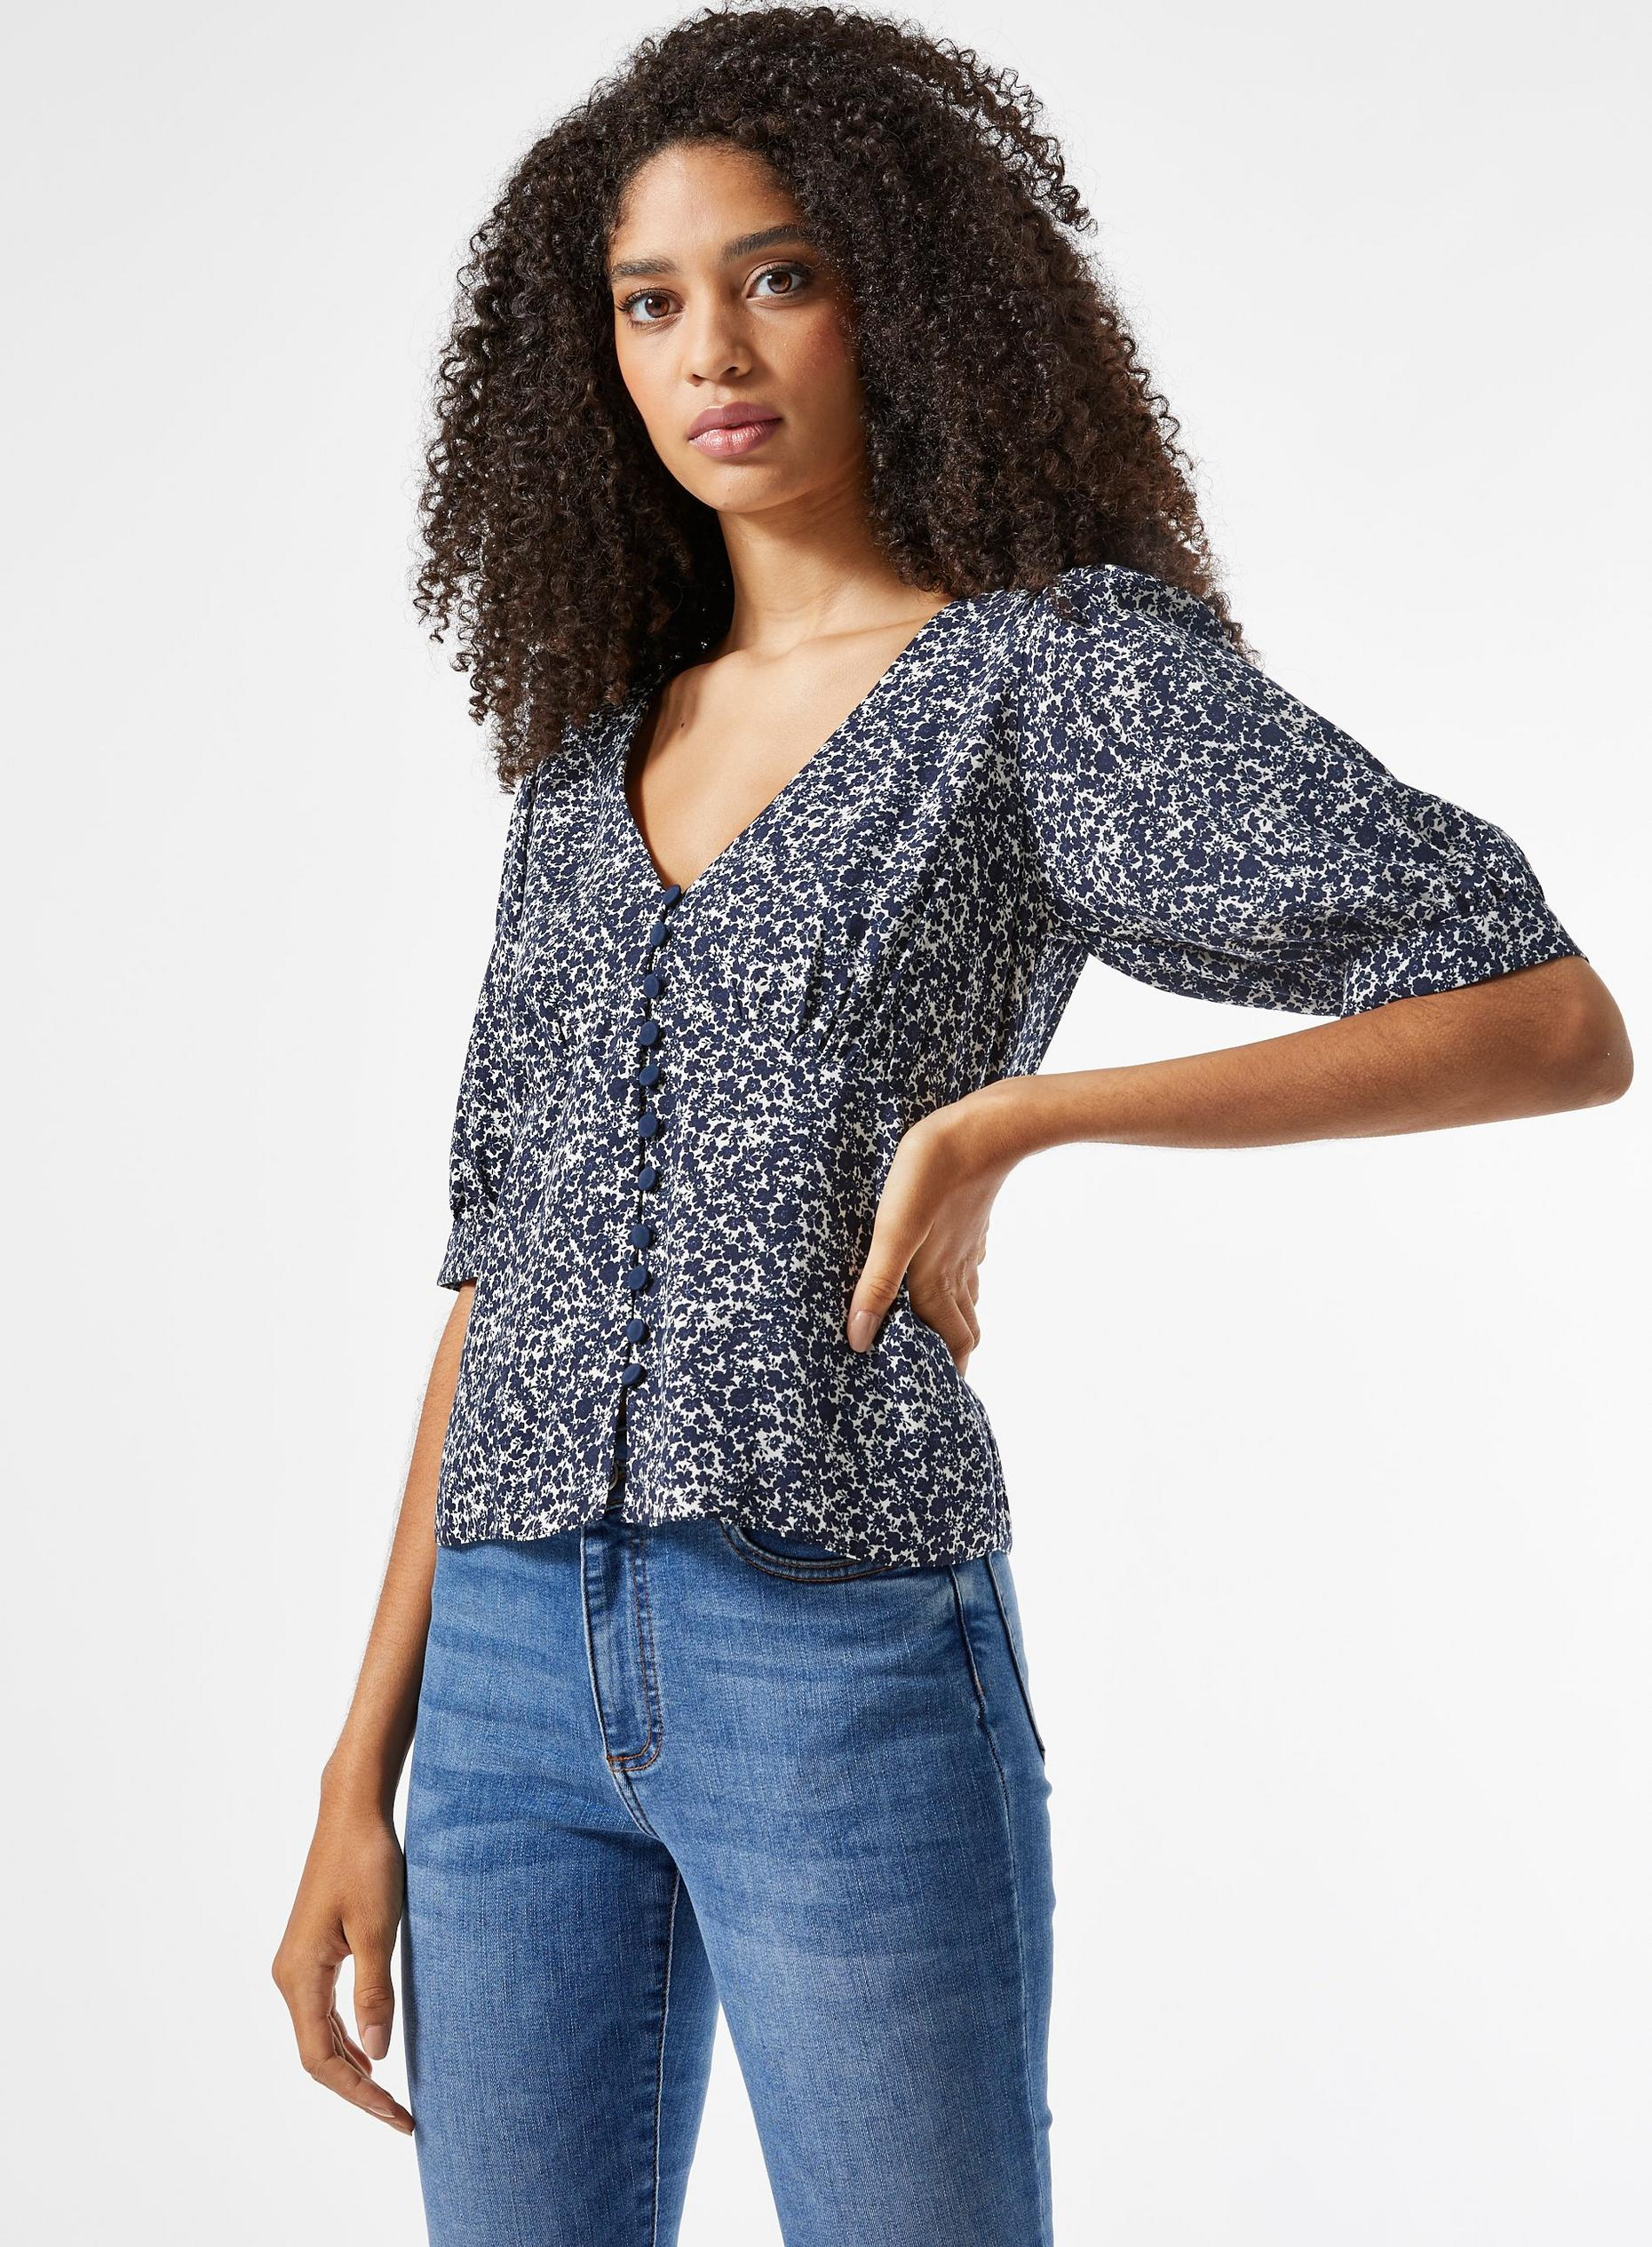 Blue Floral Print Button Top